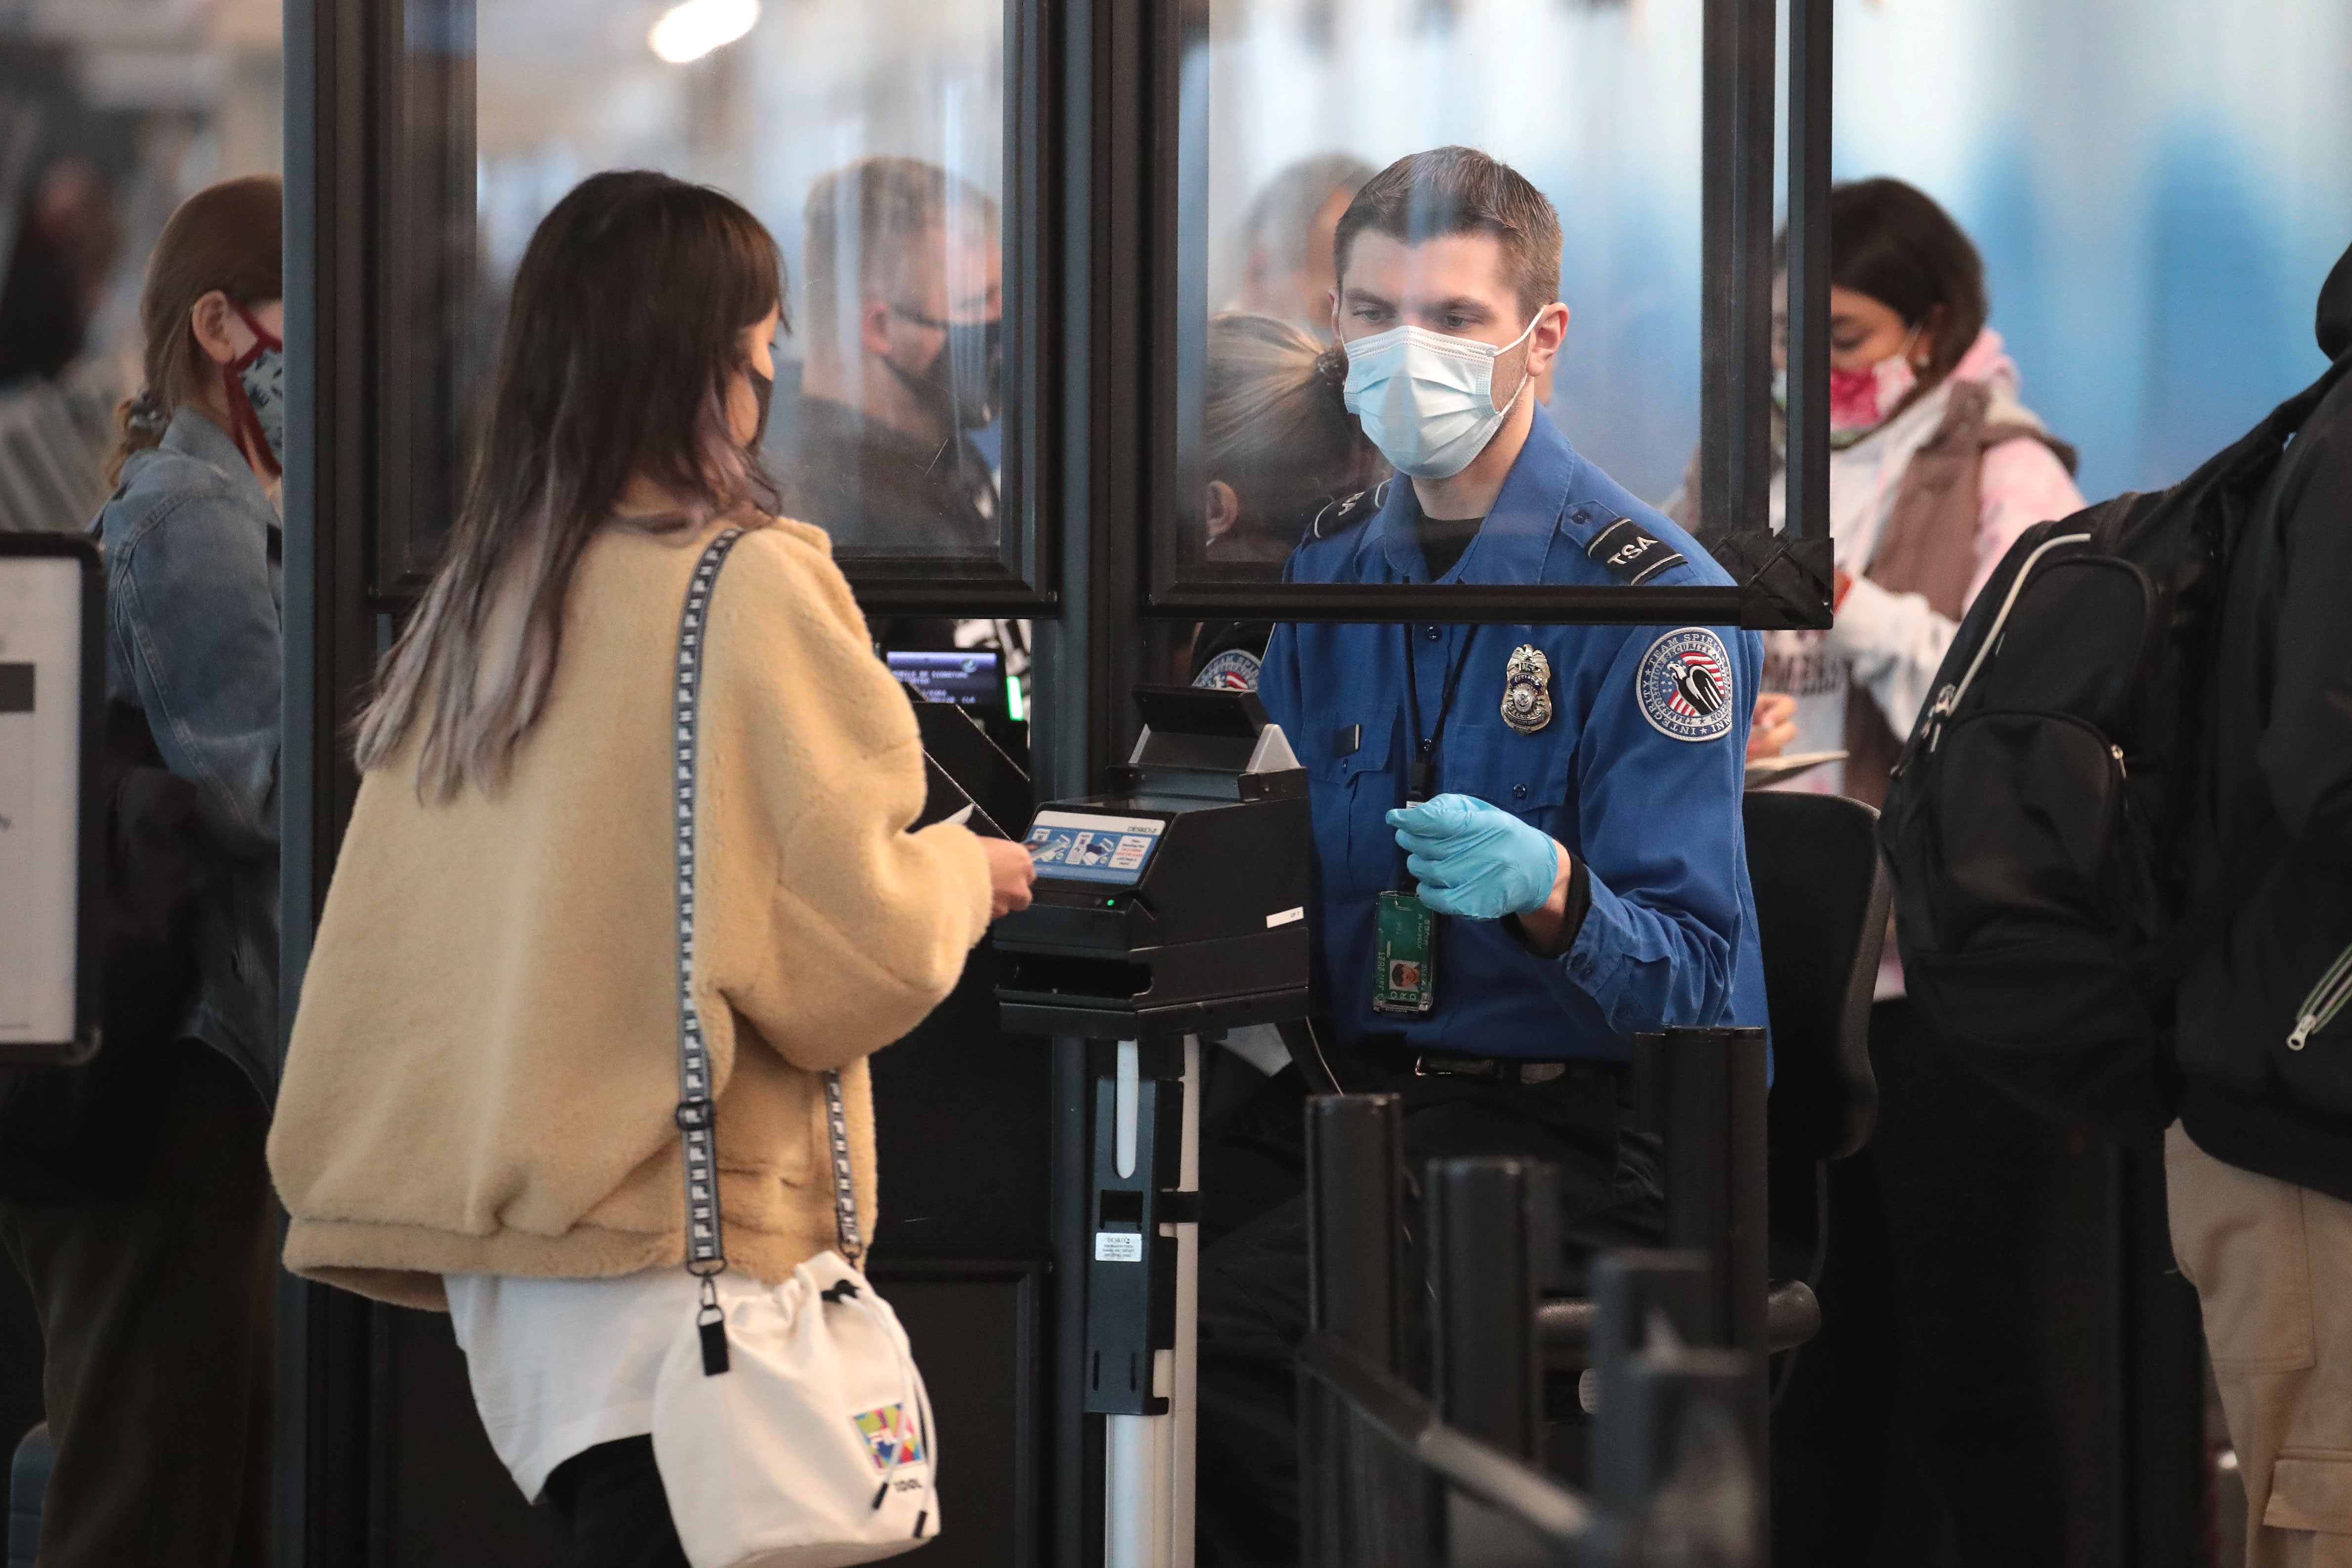 Airlines ban DC-bound travelers from checking firearms ahead of inauguration